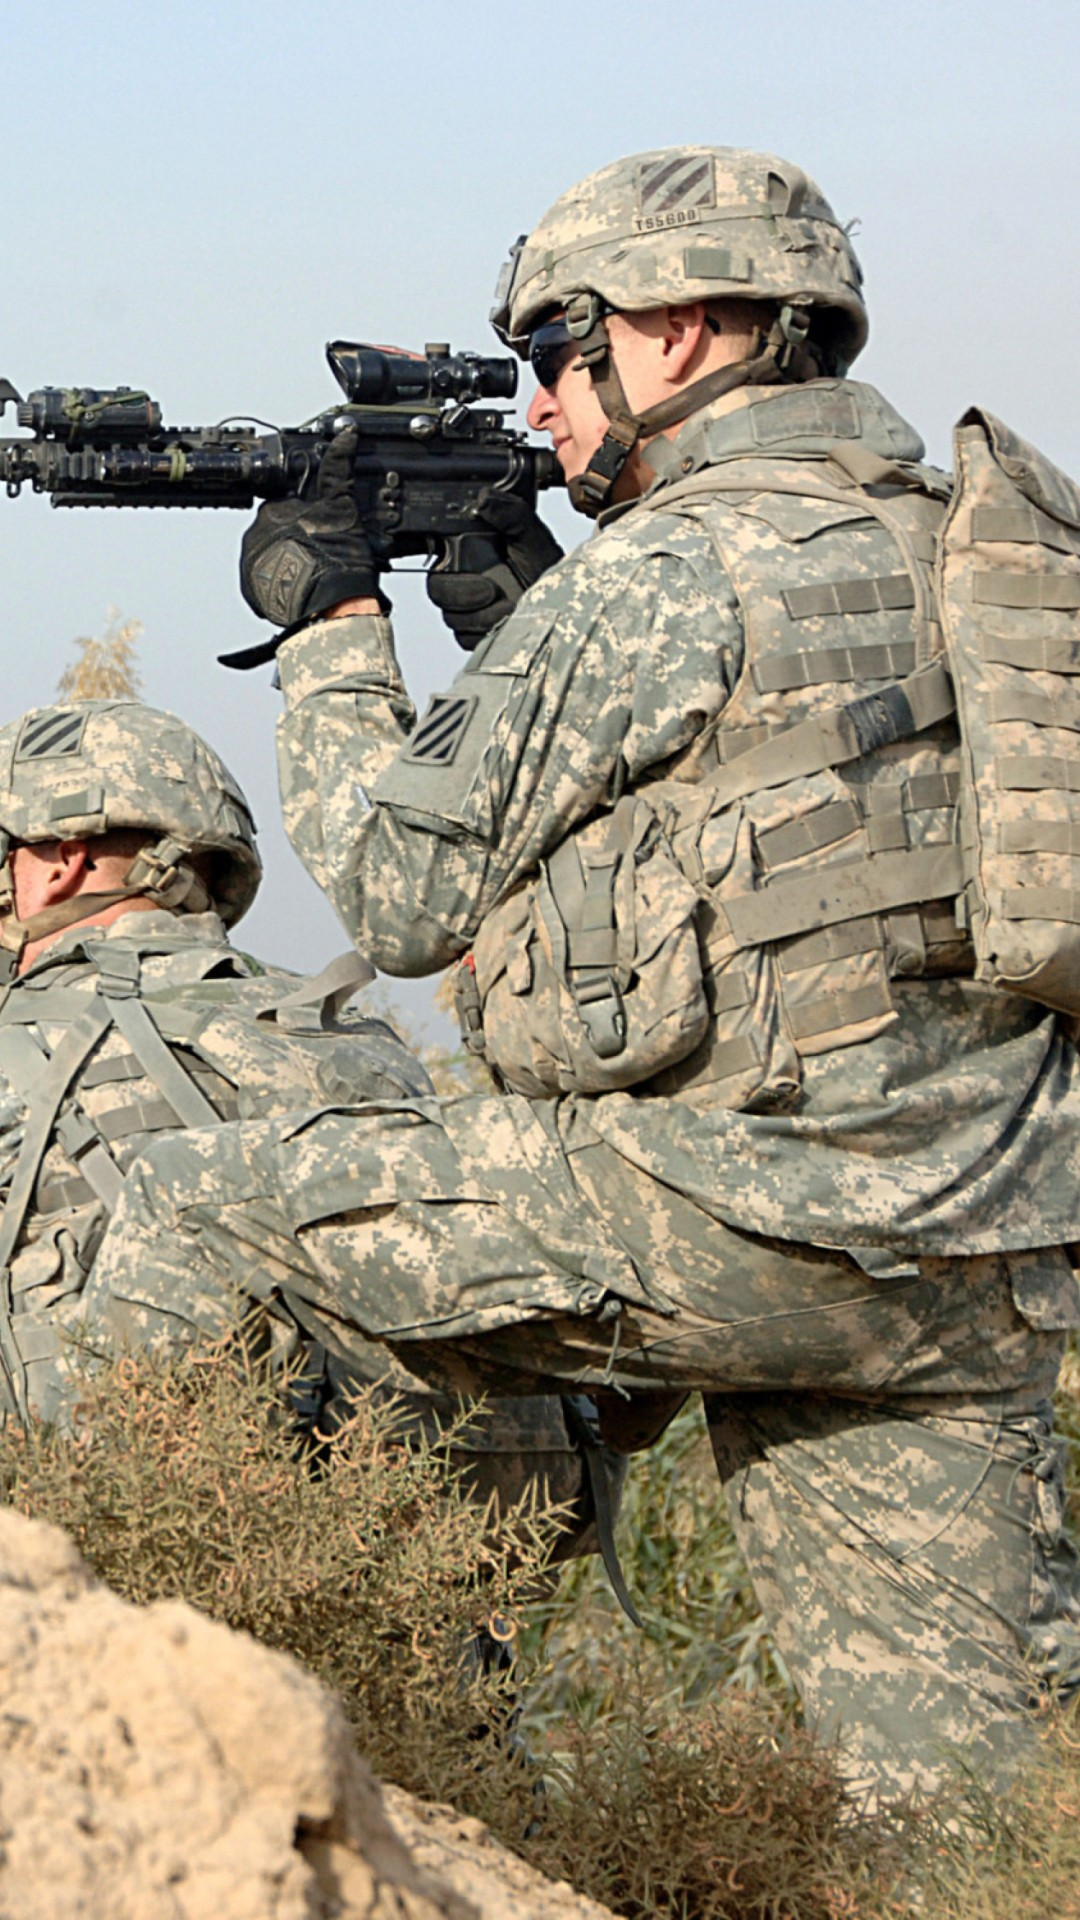 Military Wallpaper Iphone Soldier Military Wallpaper Hd 715x1271 Download Hd Wallpaper Wallpapertip